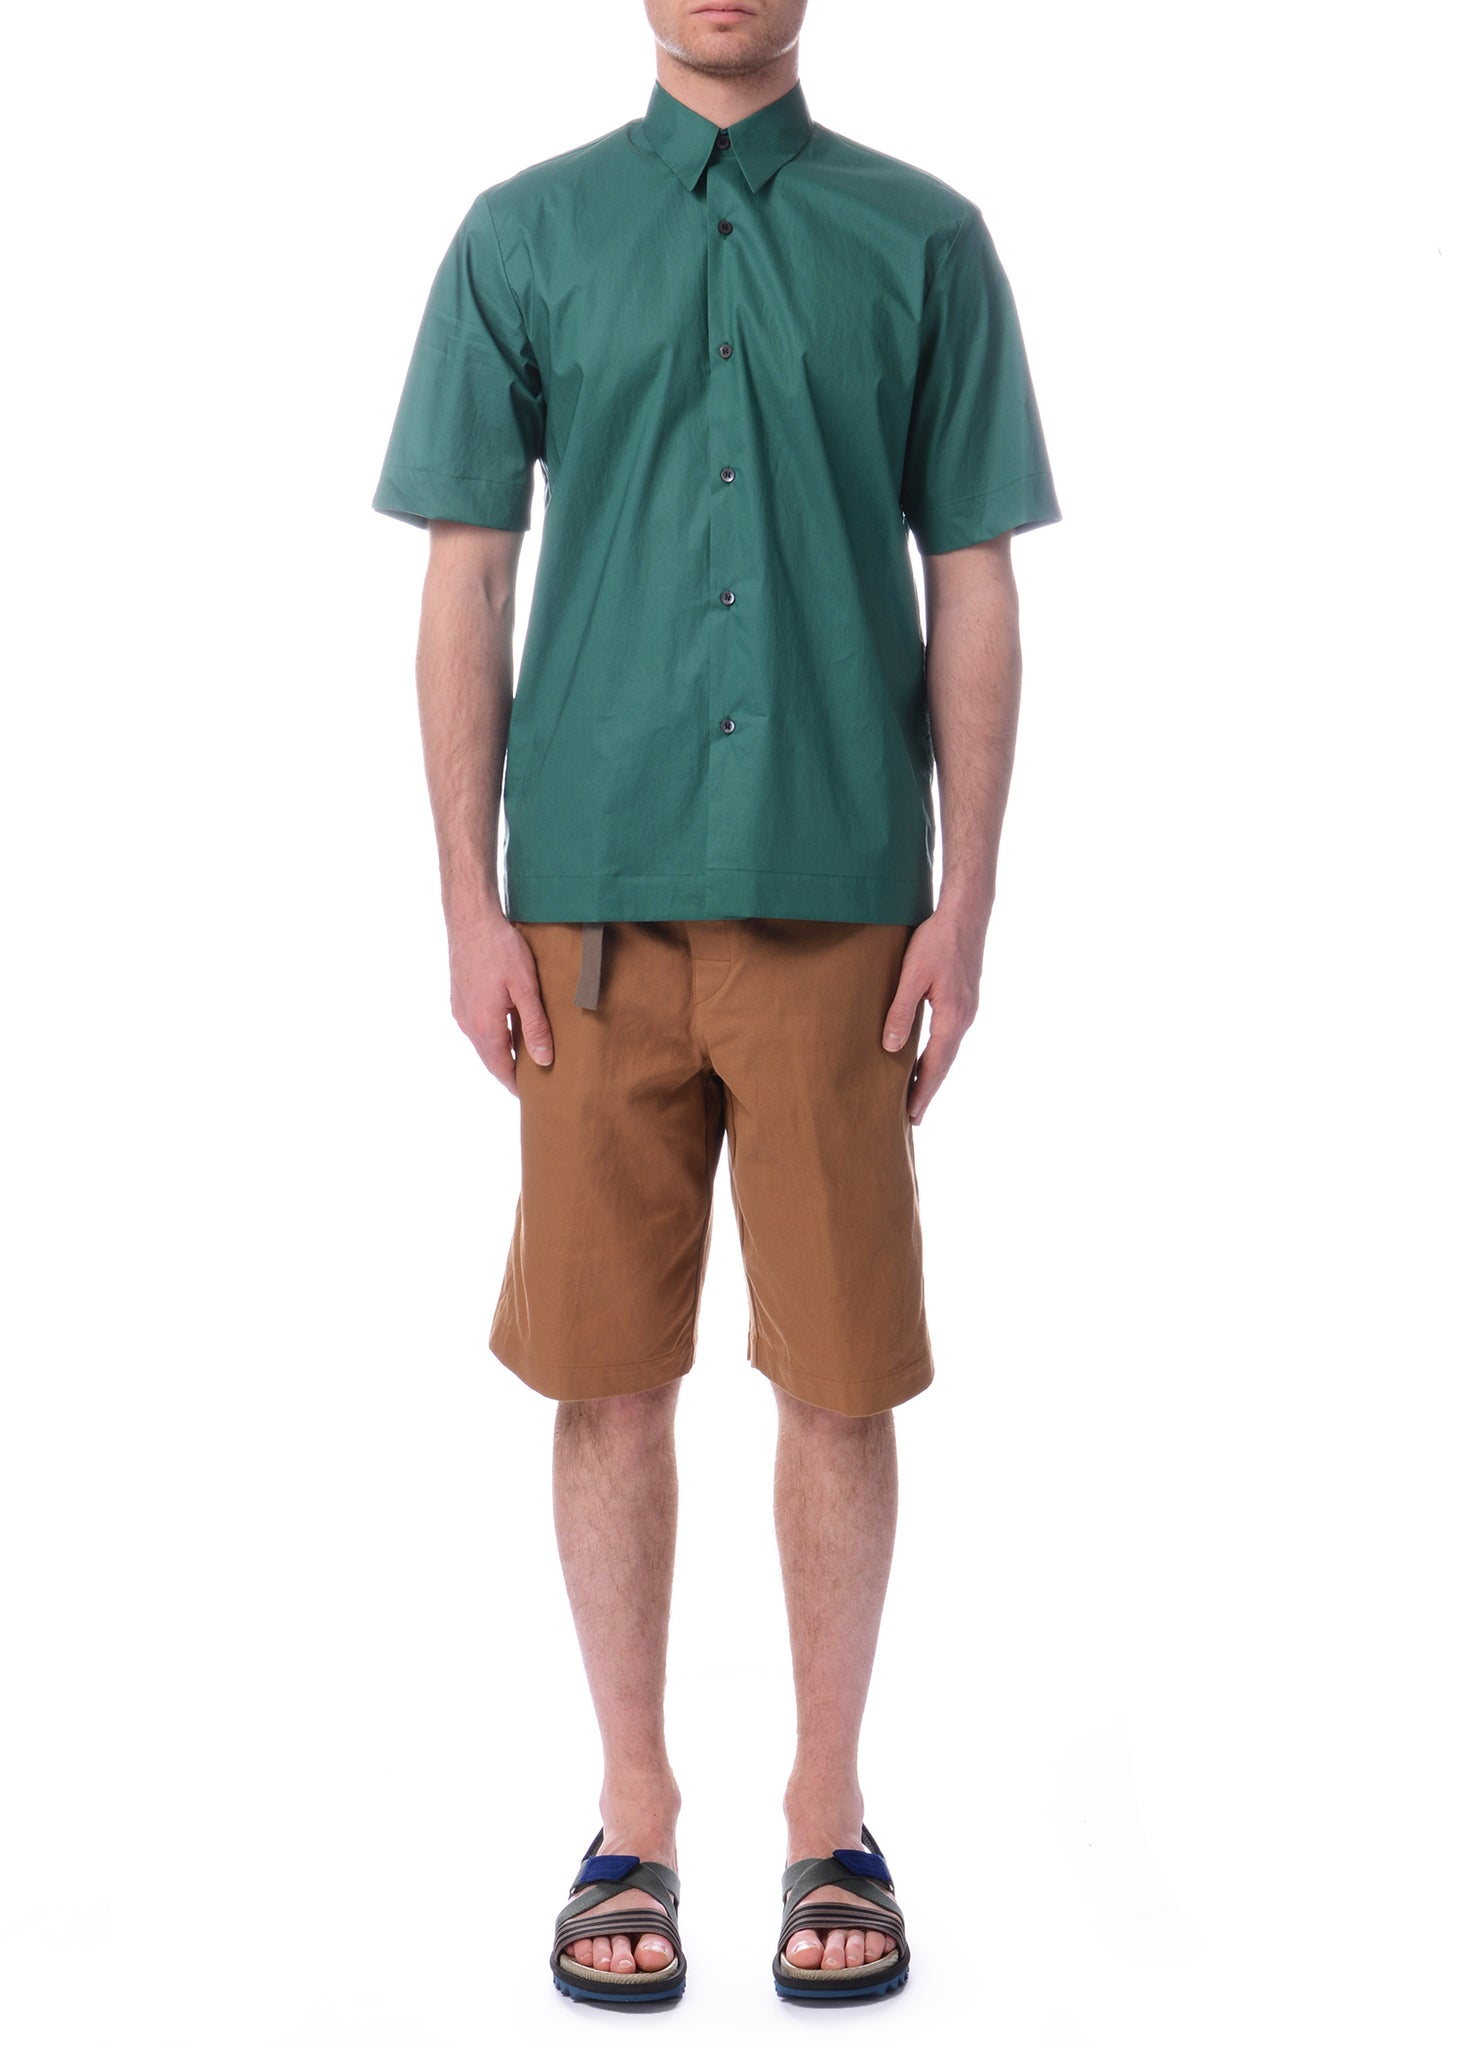 Chemise en Coton à Manches Courtes Verte|Green Cotton Short Sleeve Shirt